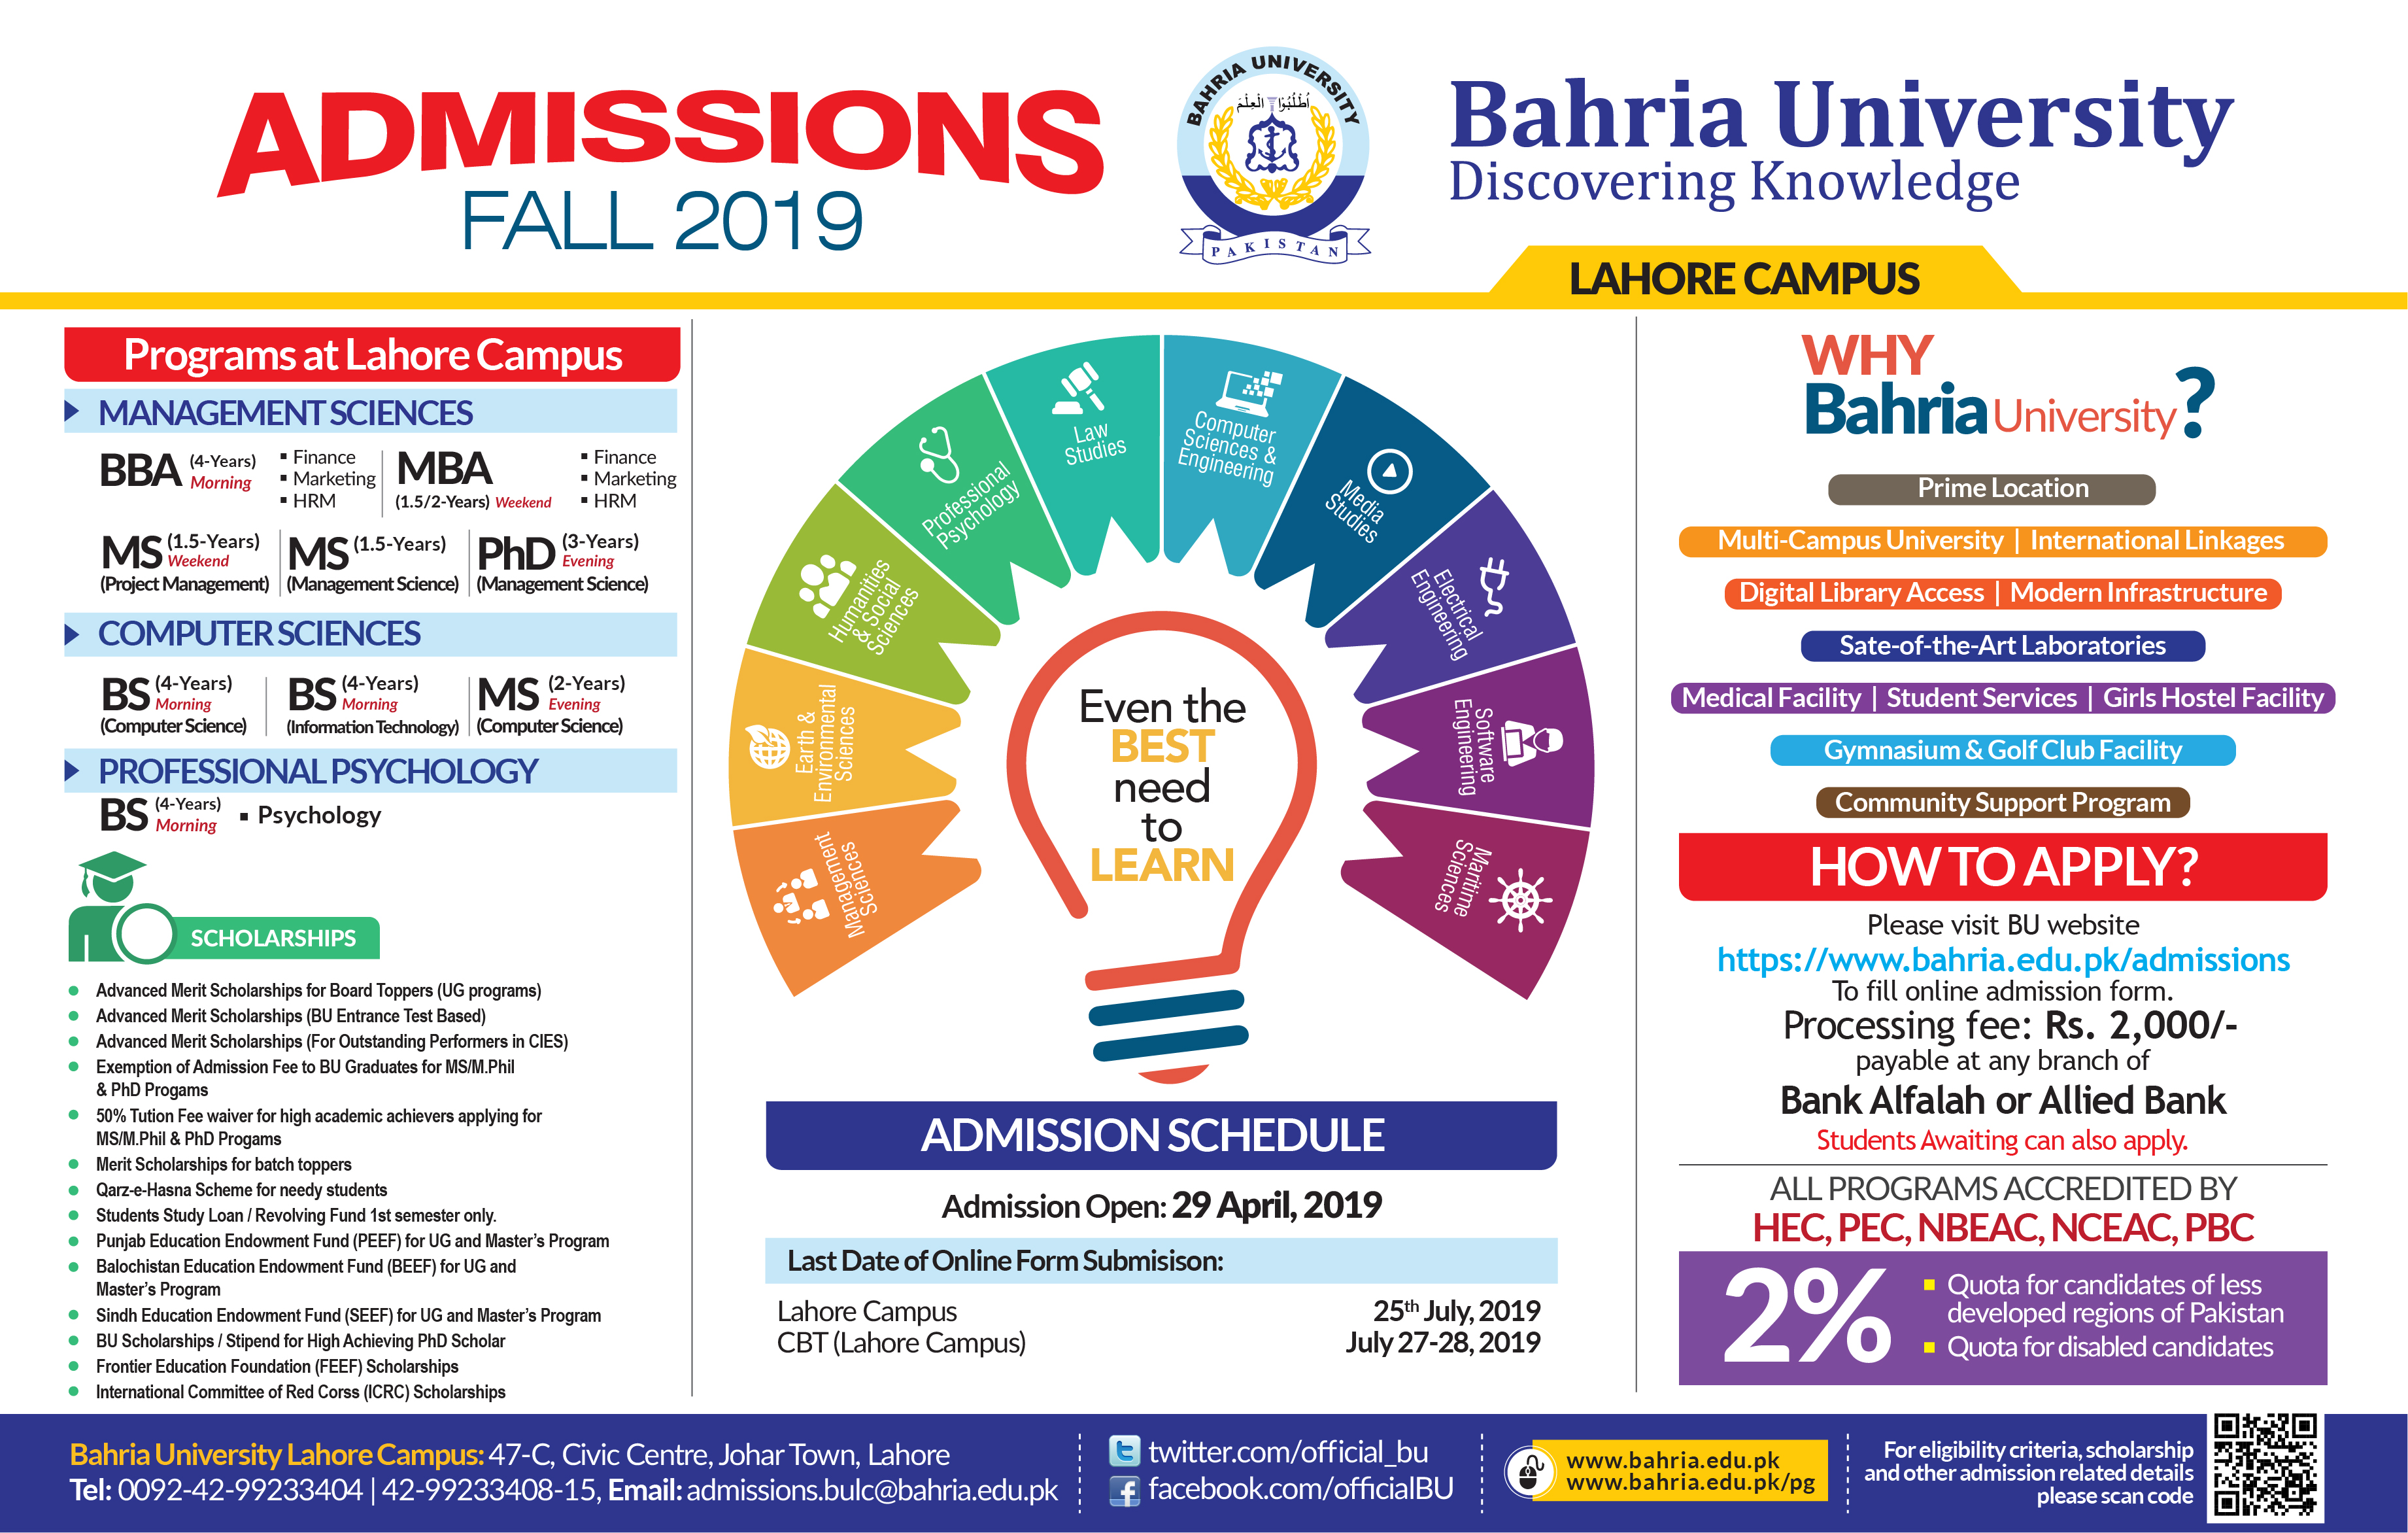 ADMISSIONS FALL 2019 OPEN FOR ISLAMABAD, KARACHI, LAHORE CAMPUSES